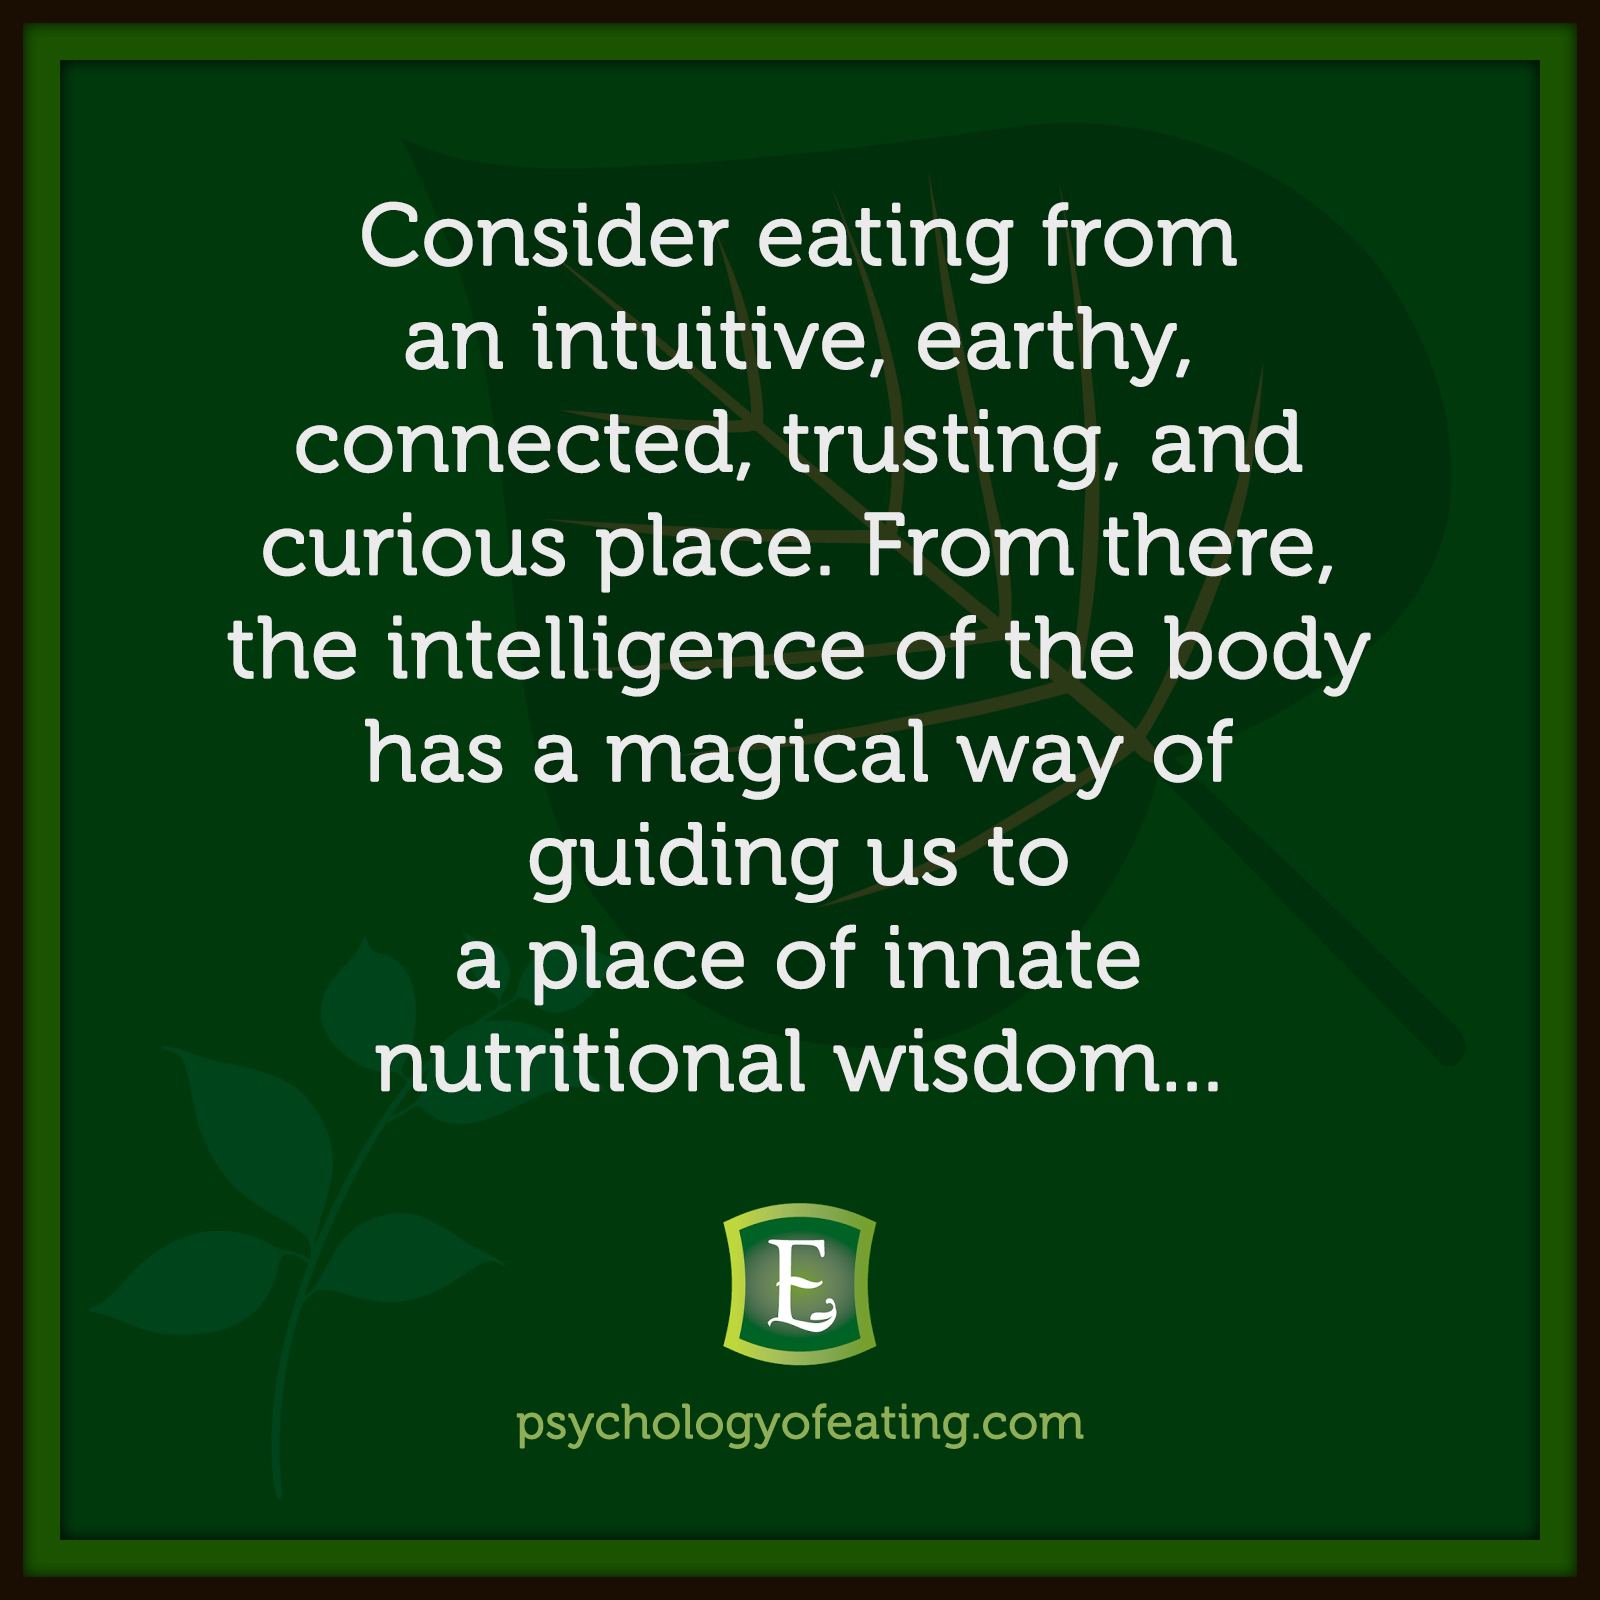 Consider eating from an intuitive, earthy, connected, trusting, and curious place. From there, the intelligence of the body has a magical way of guiding us to a place of innate nutritional wisdom... #health #nutrition #eatingpsychology #IPE